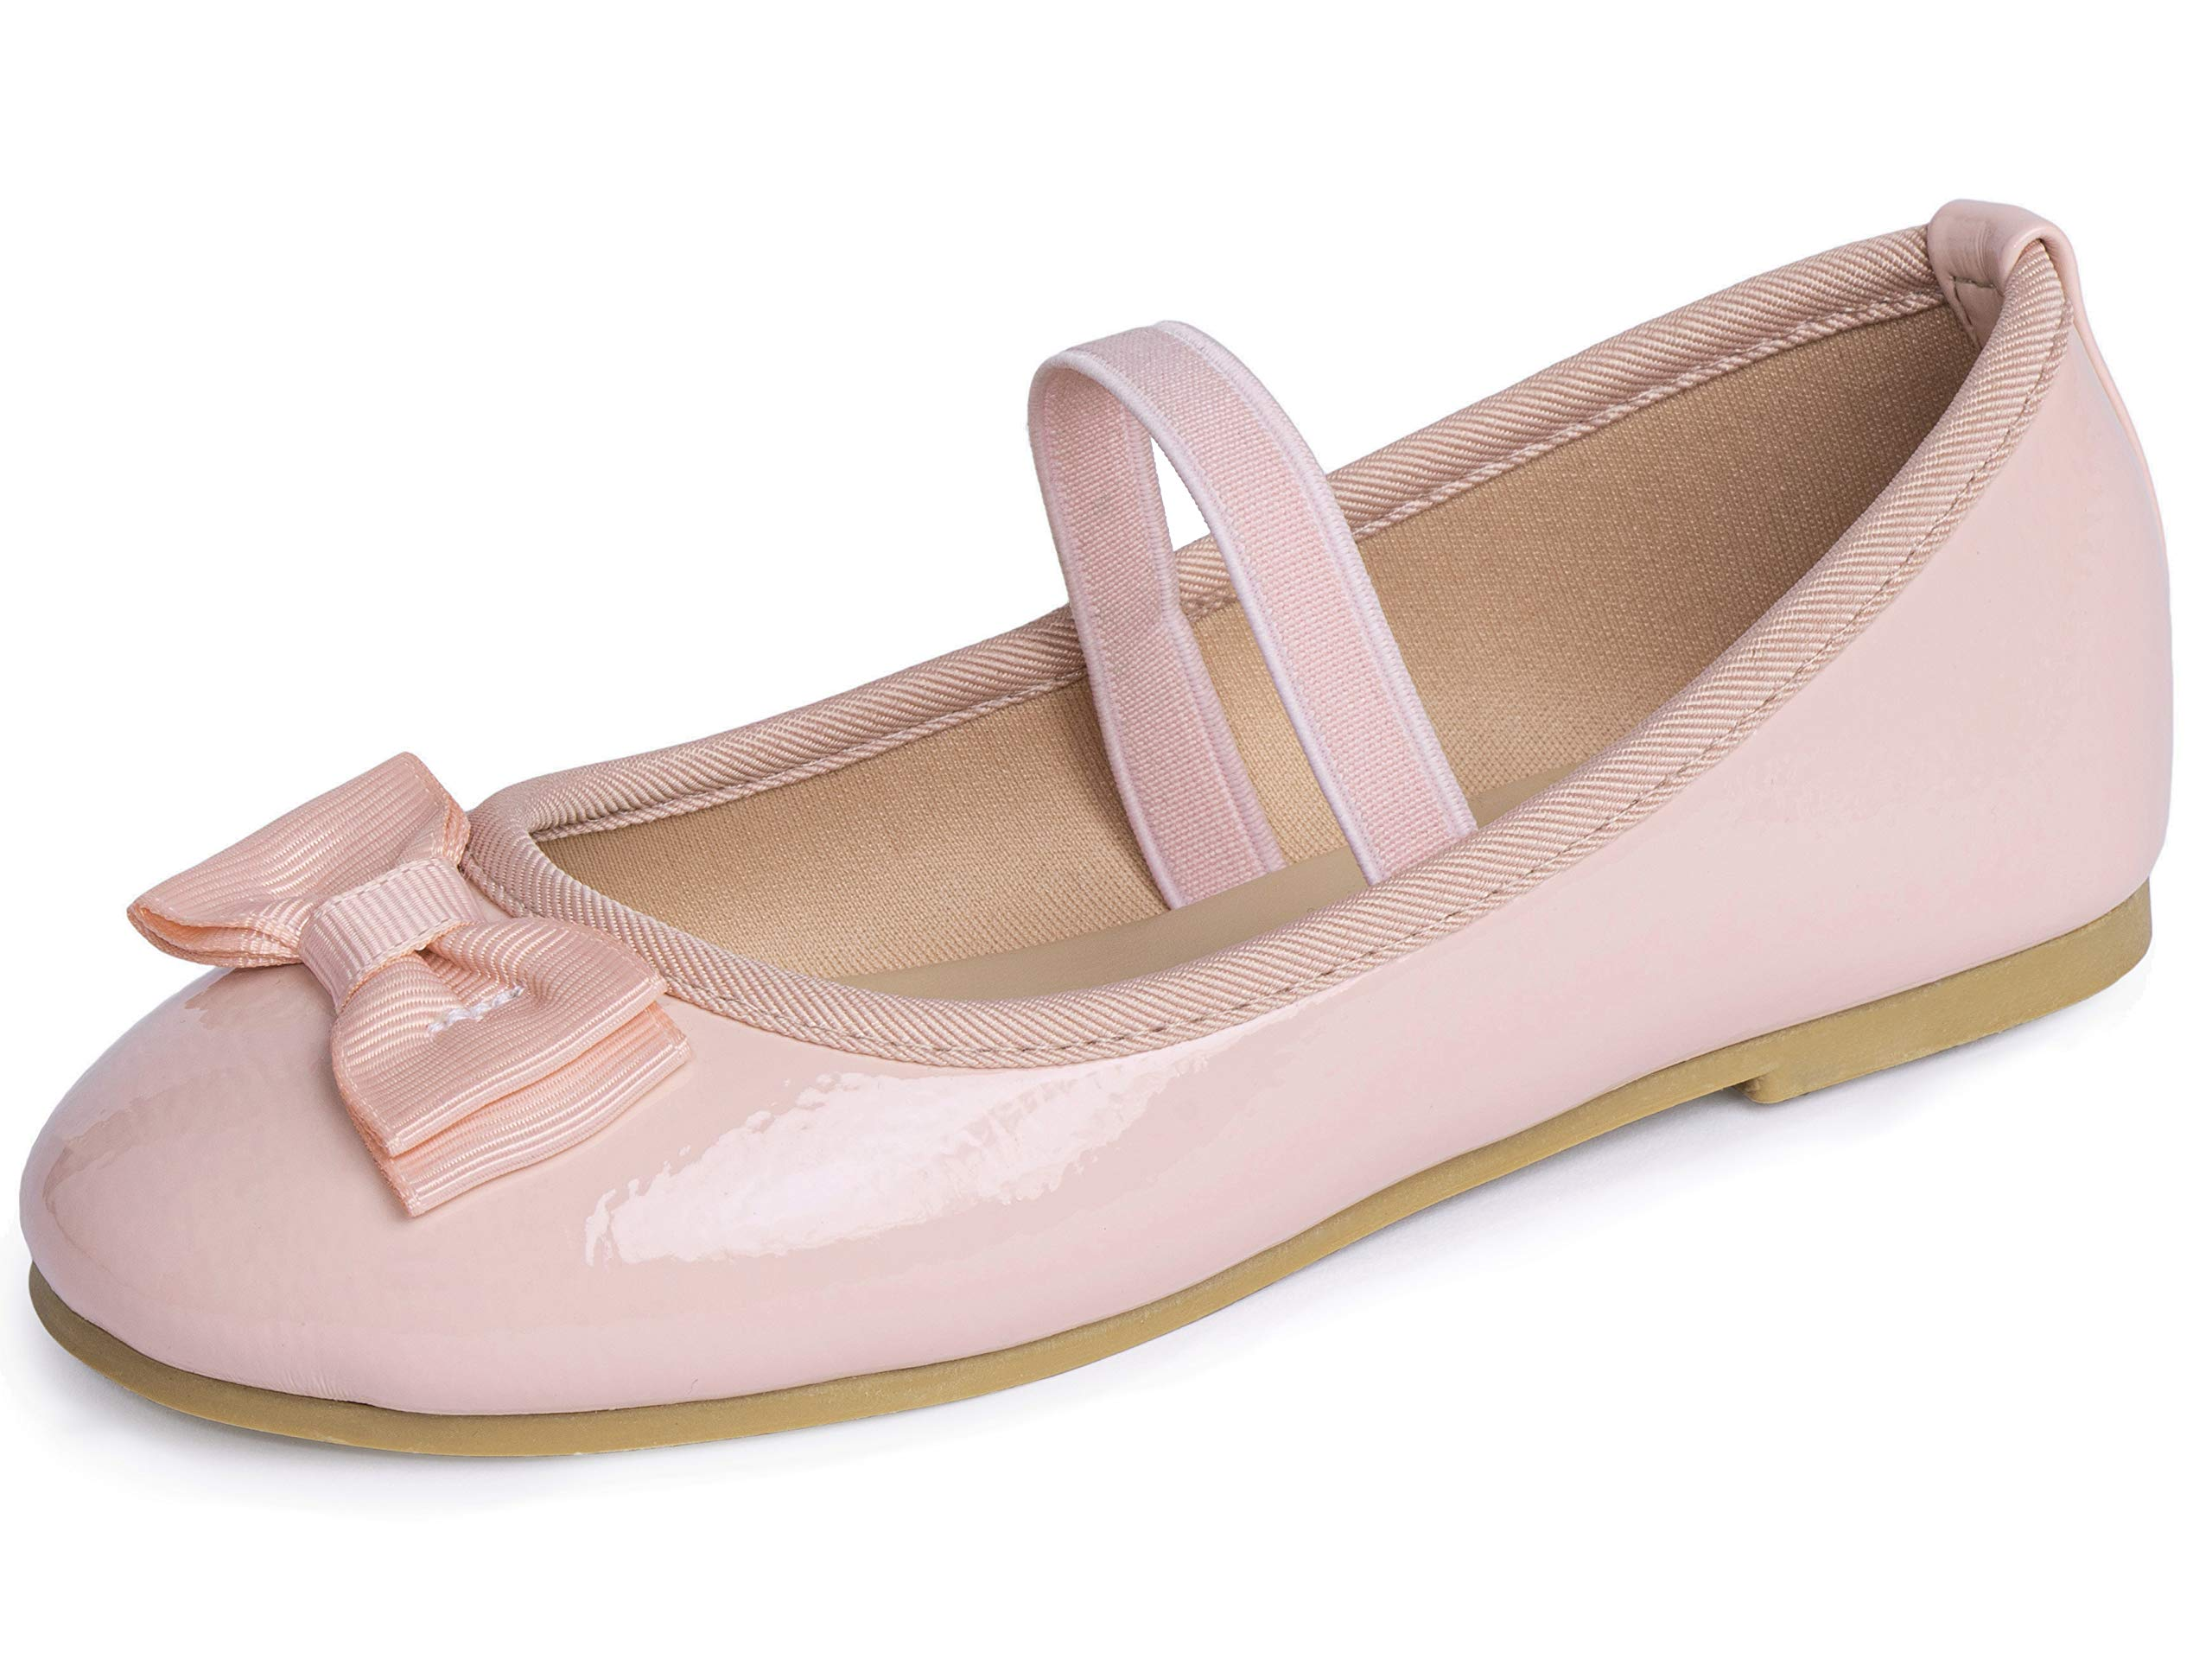 Otter MOMO Toddler Girls Ballet Flats Mary Jane Dress Shoes with Bow Knot Pink